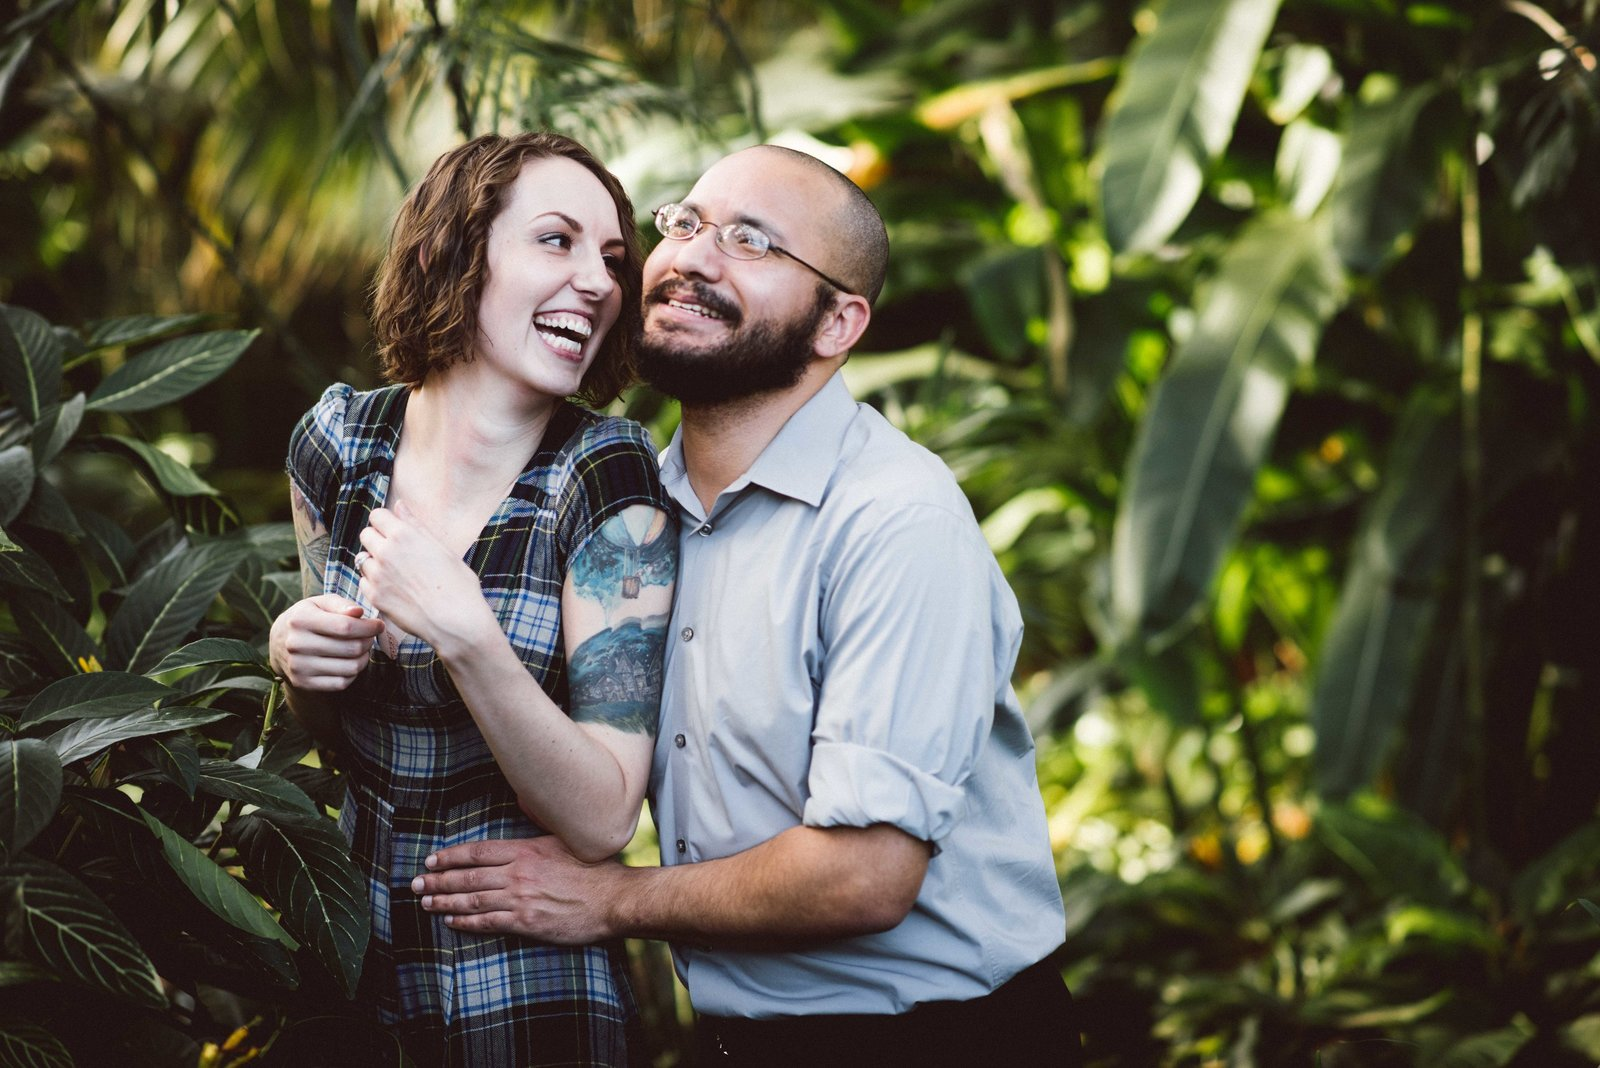 Engaged couple poses amongst foliage, Garfield Park Conservatory, Chicago.